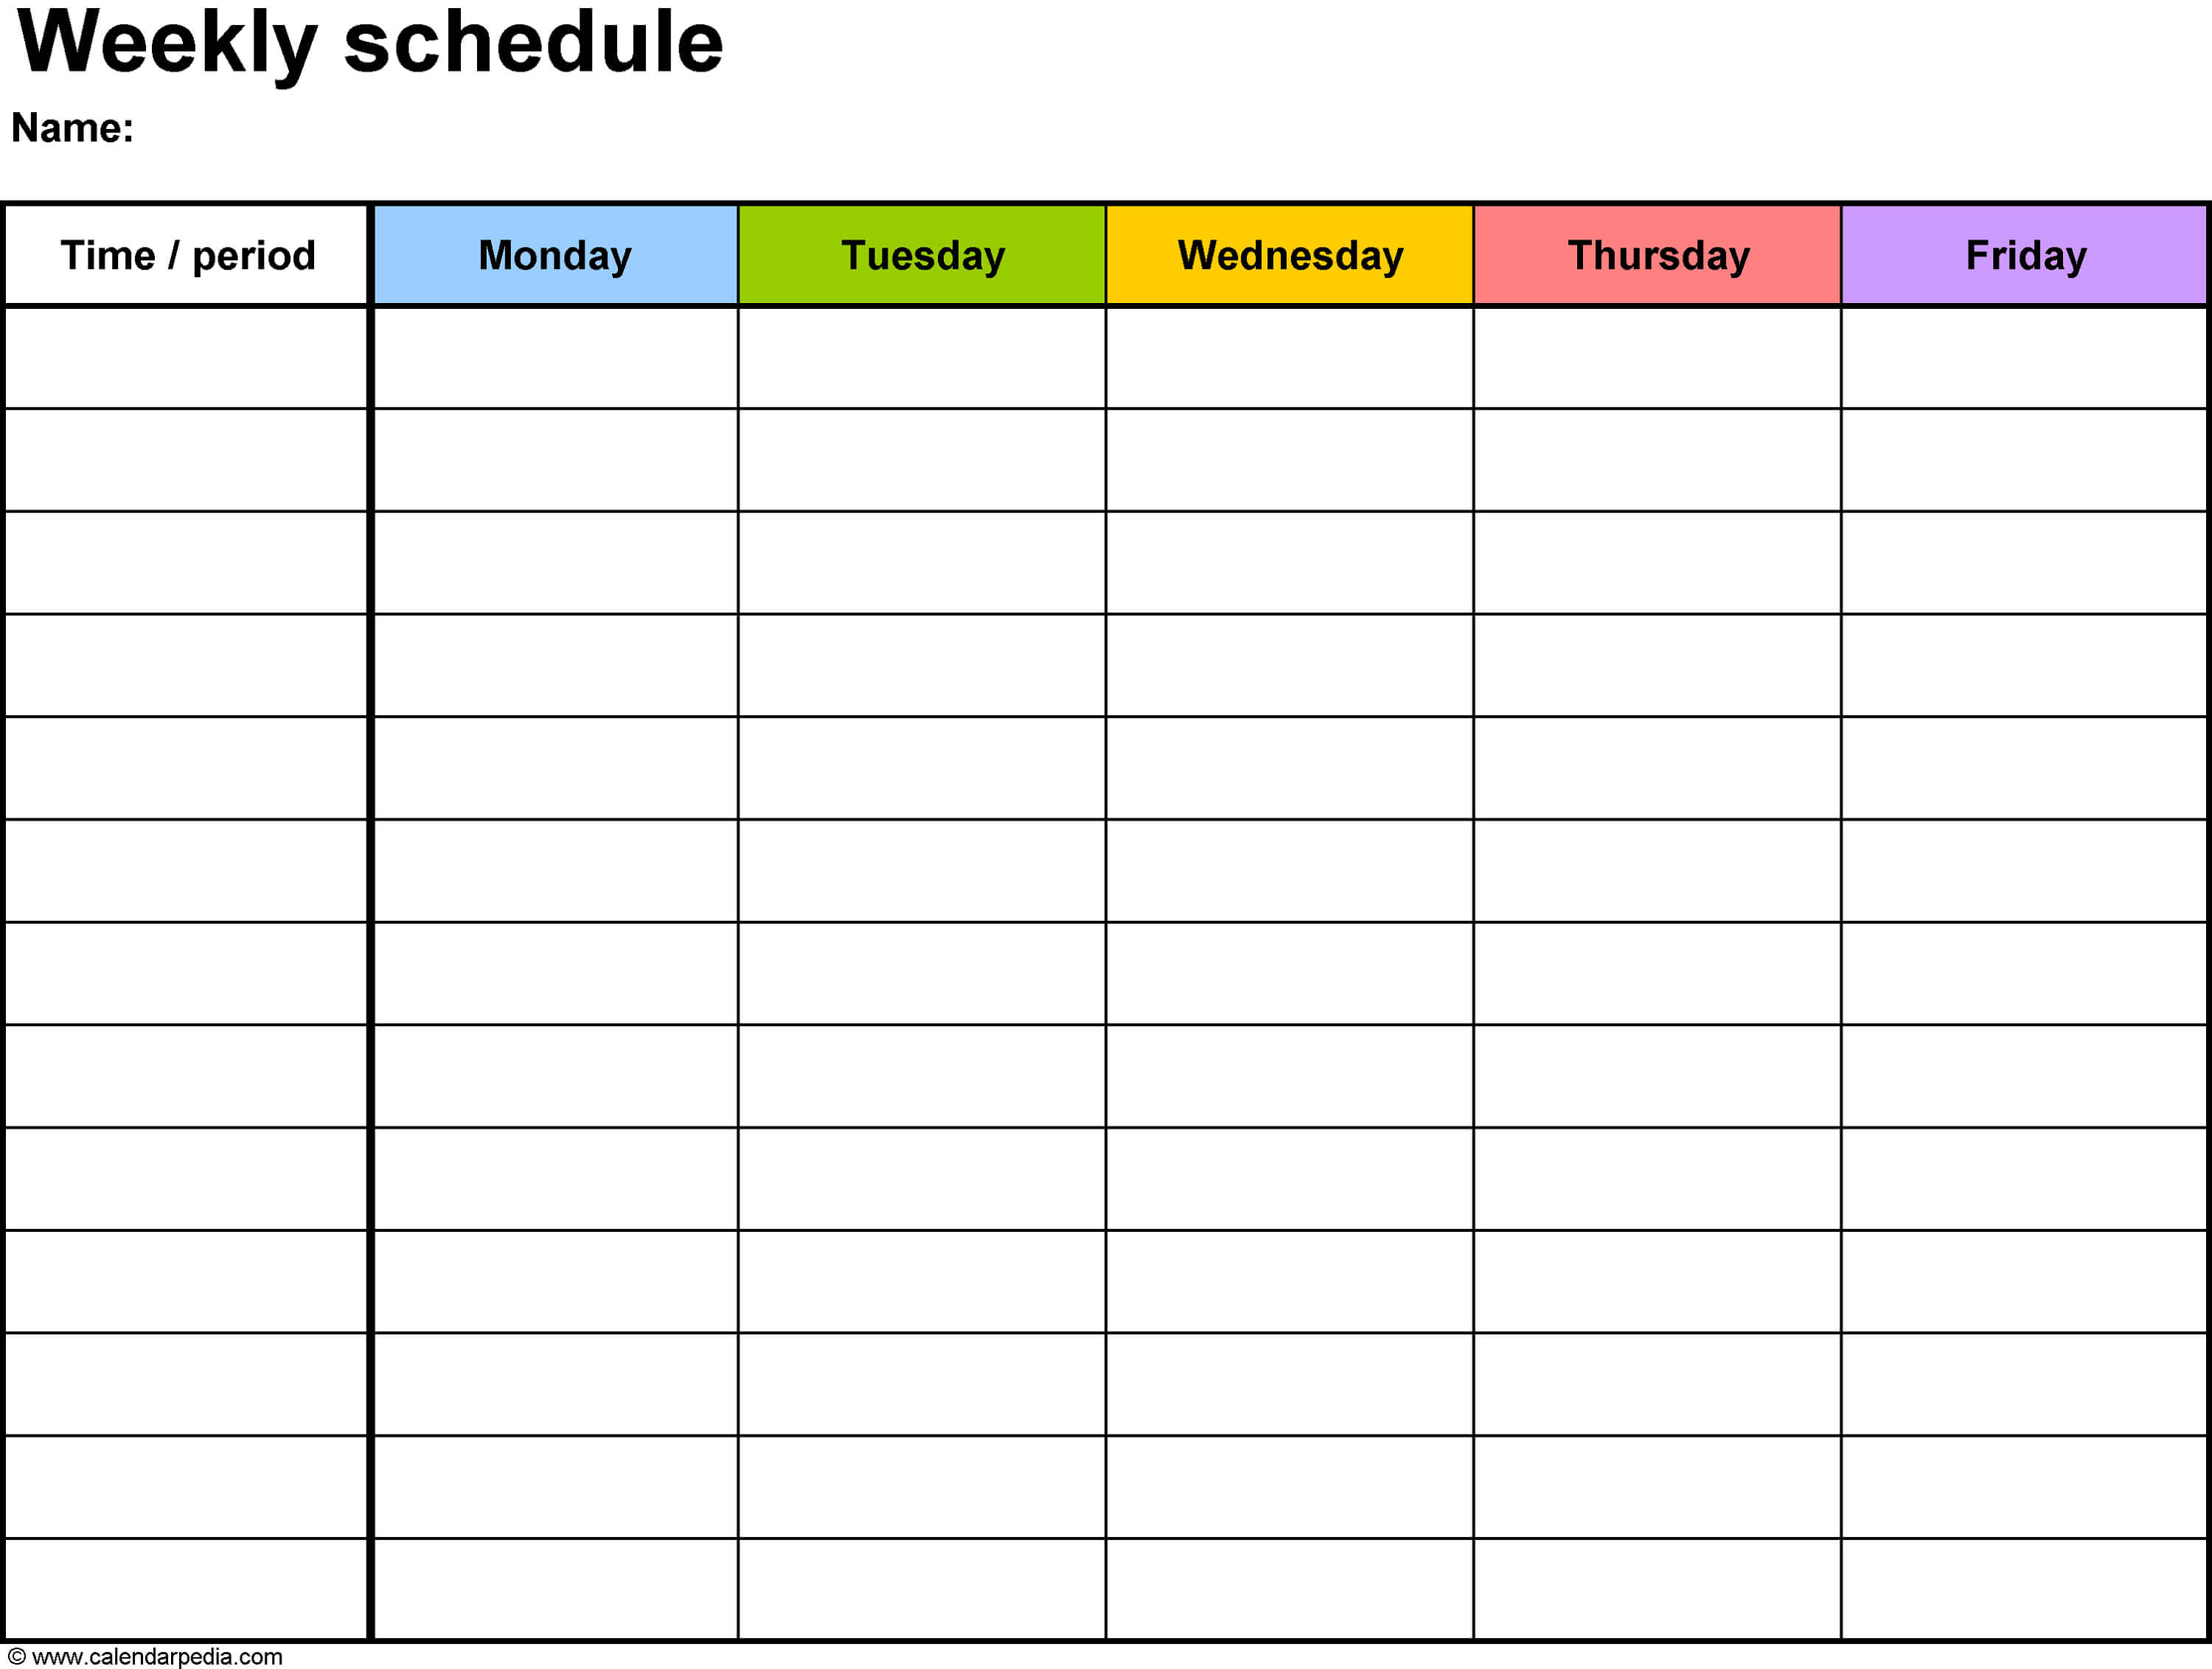 Printable Workout Calendar | Daily Calendar Template intended for Blank Workout Schedule Template